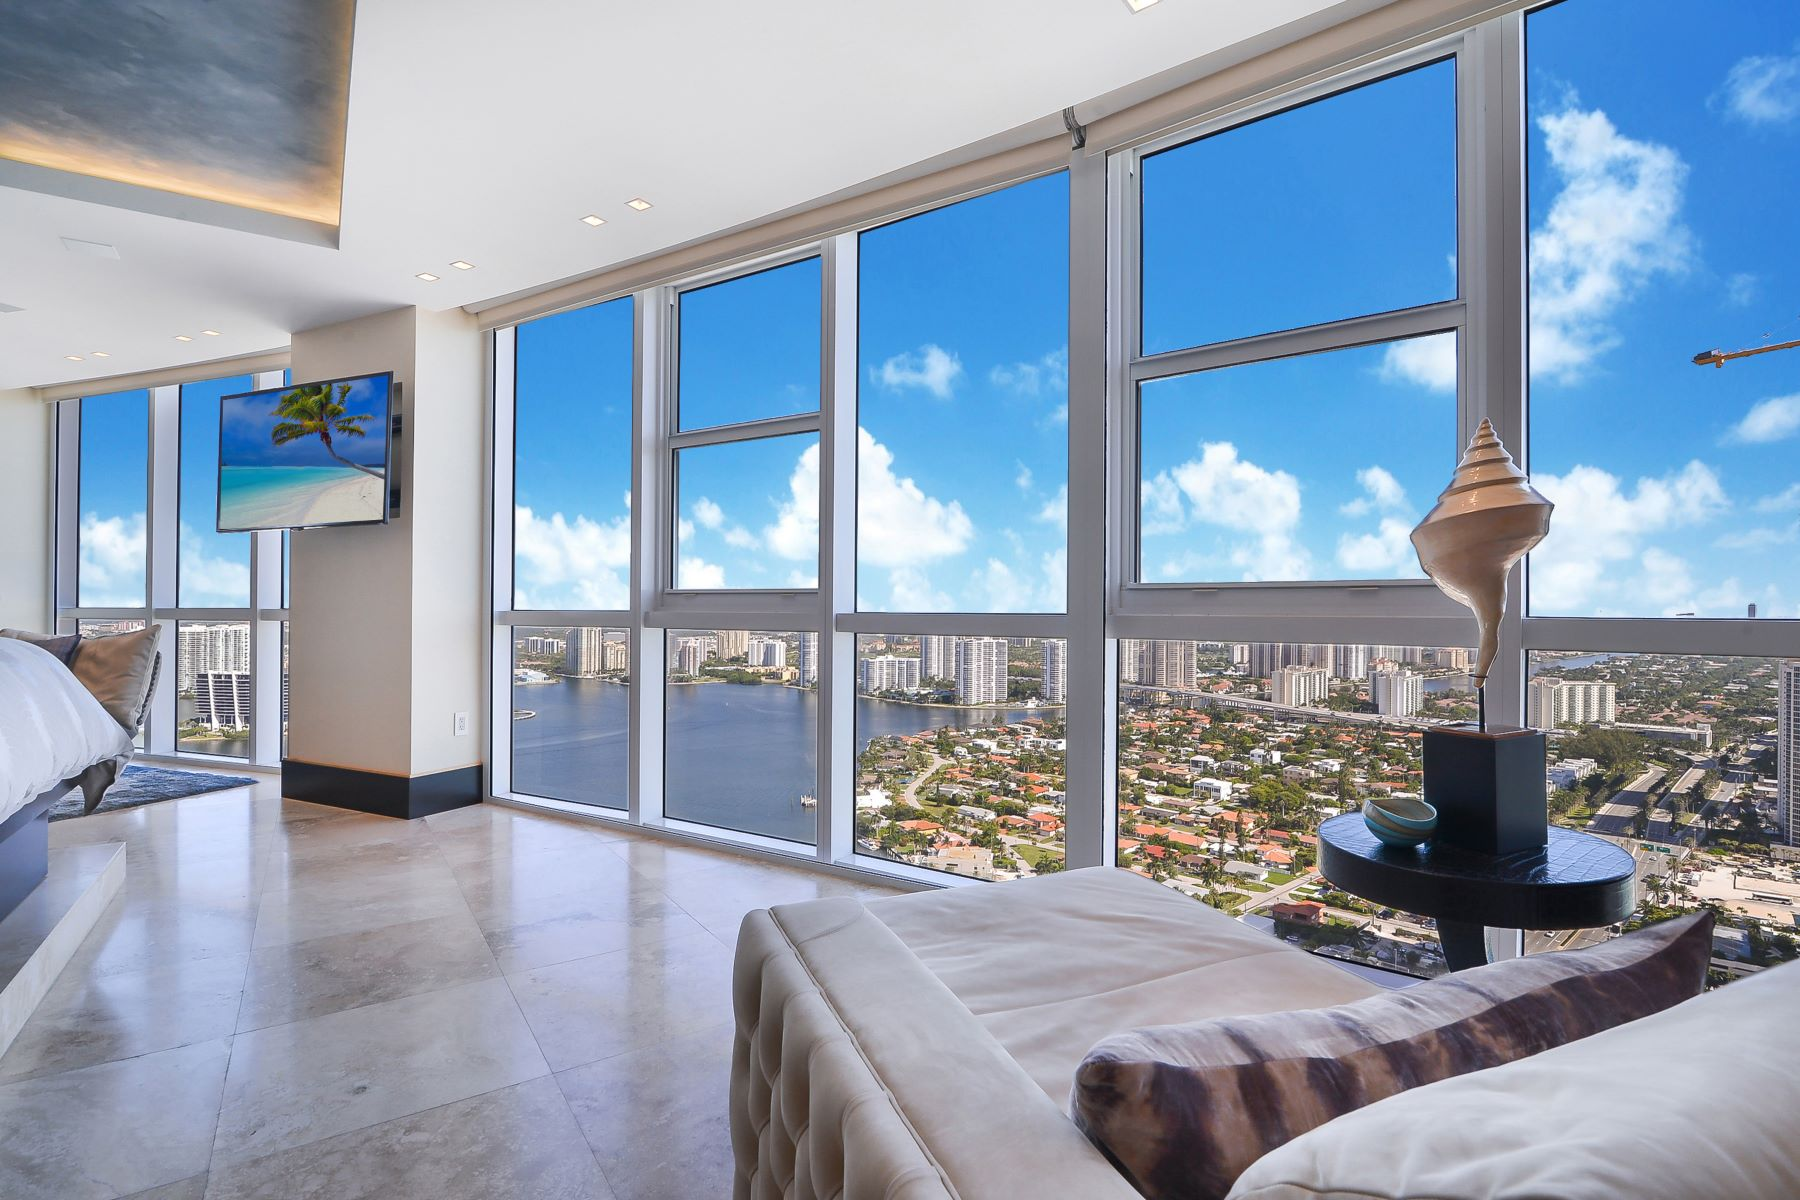 Condominiums for Sale at 18201 Collins Ave PH01, Sunny Isles Beach, Florida 33160 United States